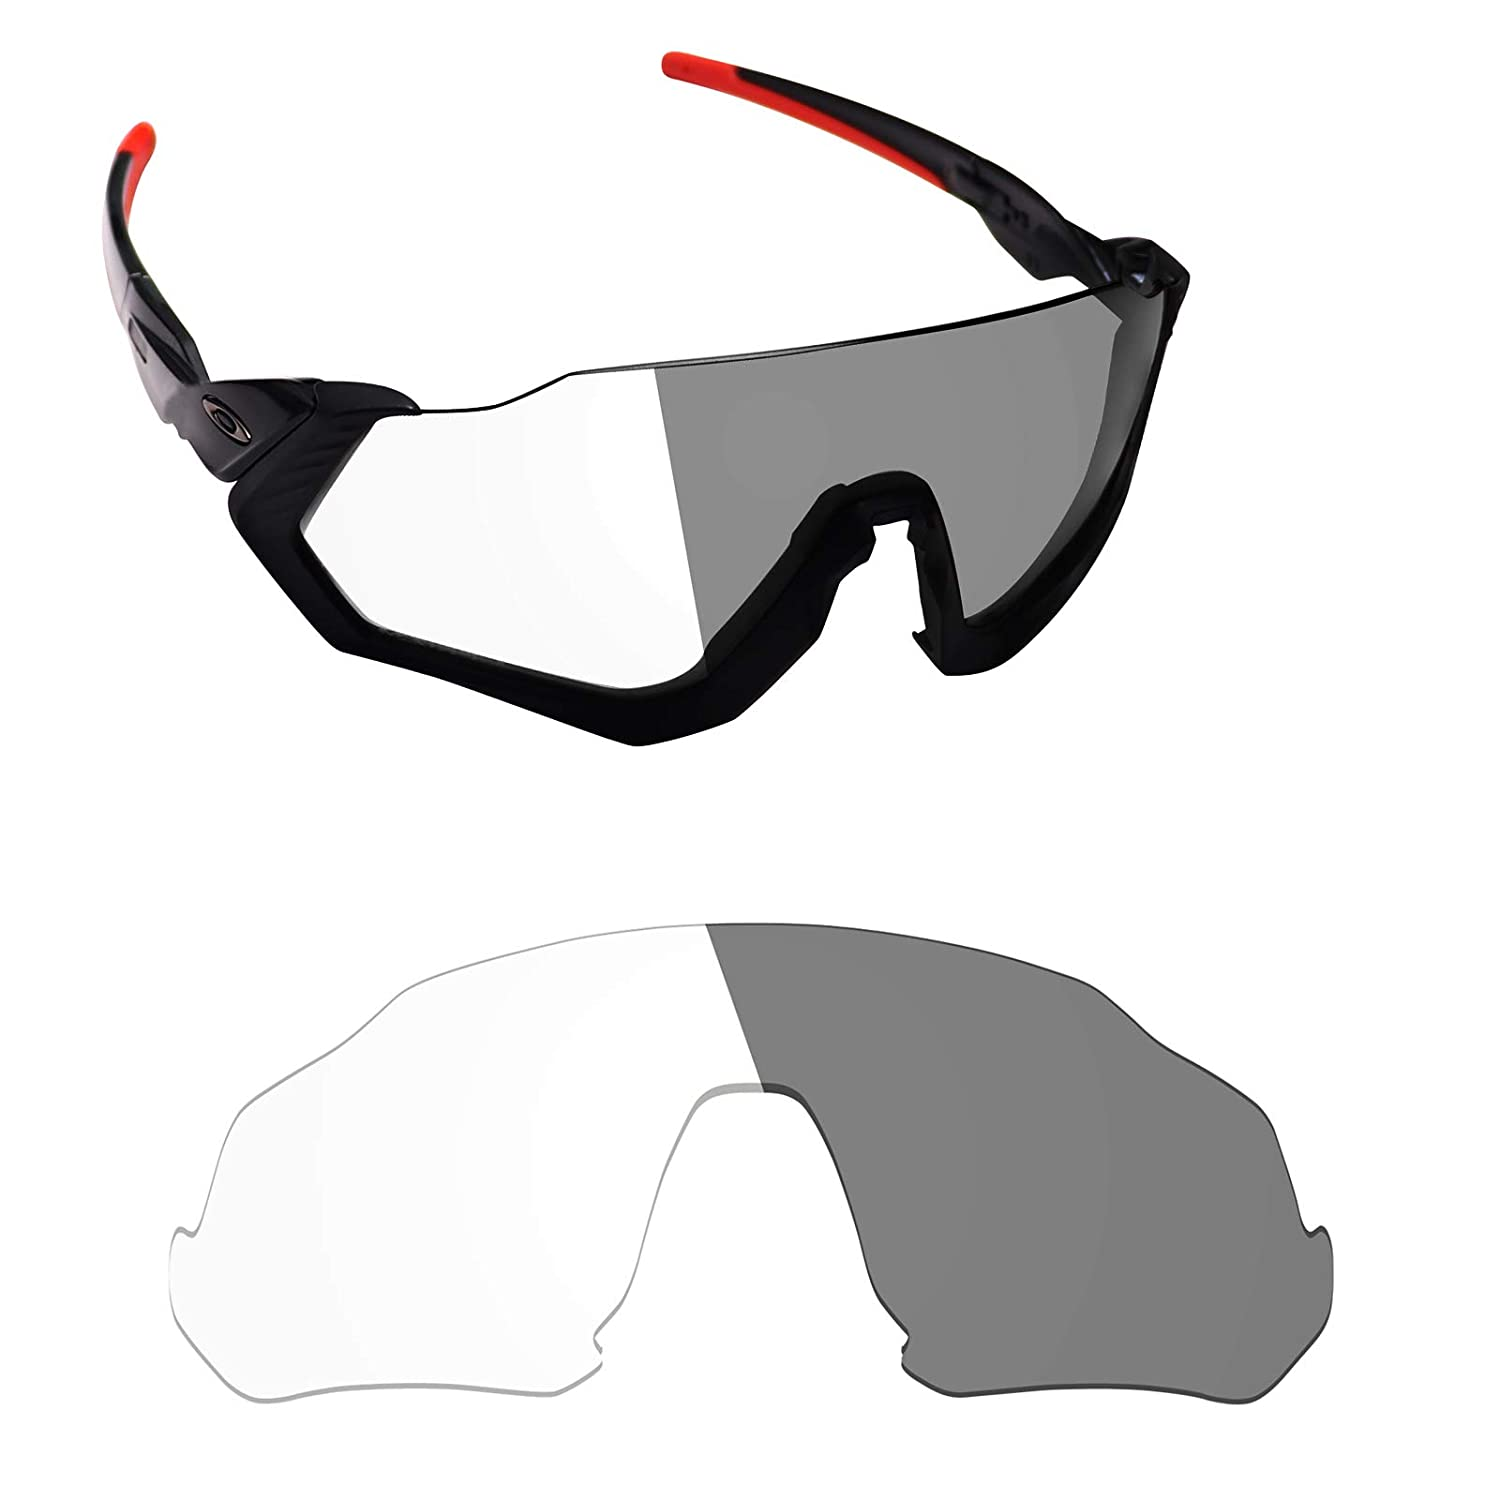 Alphax Polarized Replacement Lenses for Oakley Flight Jacket - Options